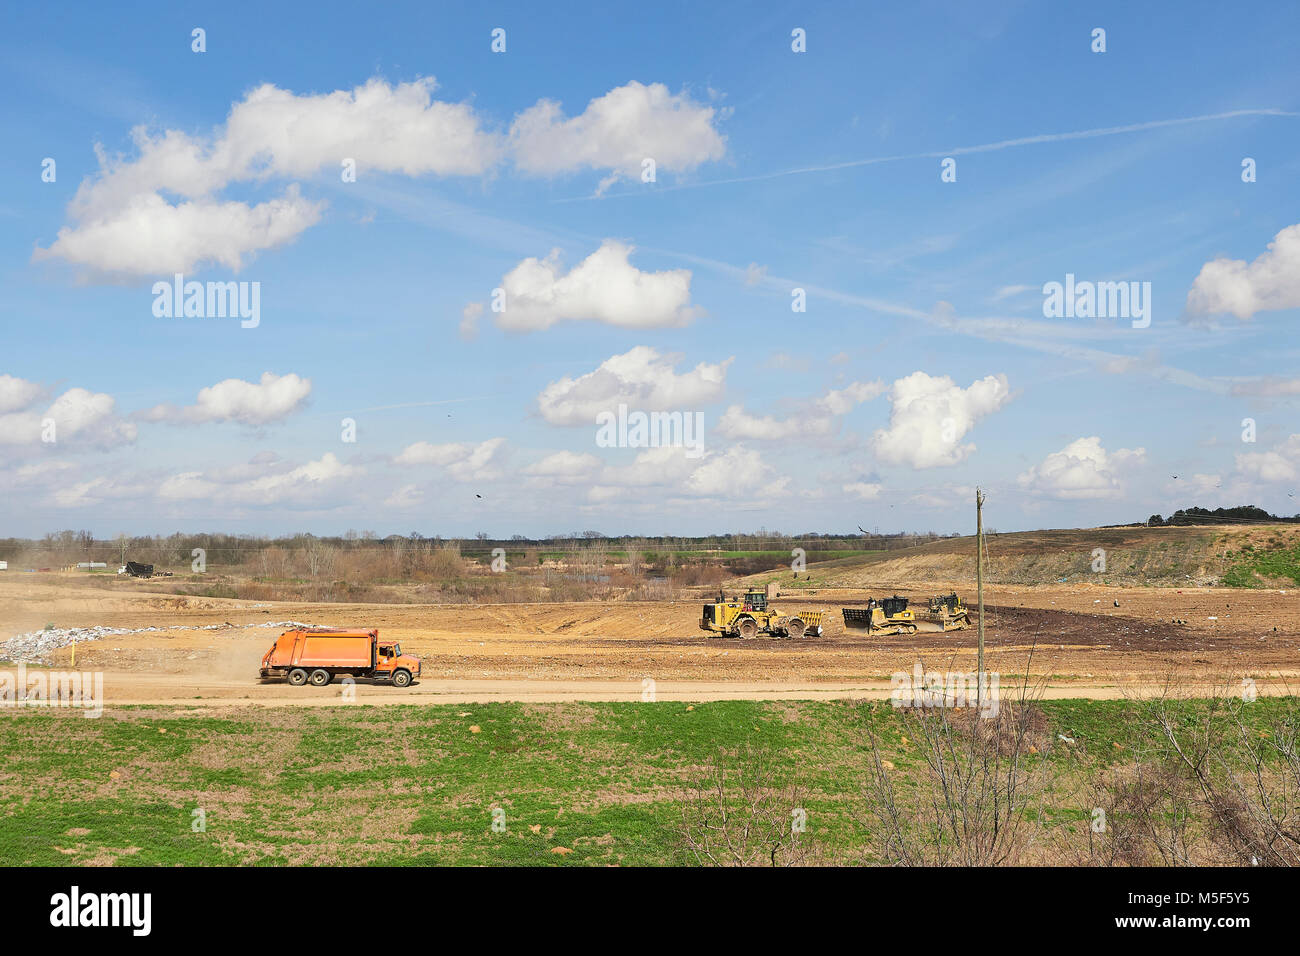 Landfill site or dump, wide angle view with copy space in Montgomery Alabama, USA. - Stock Image